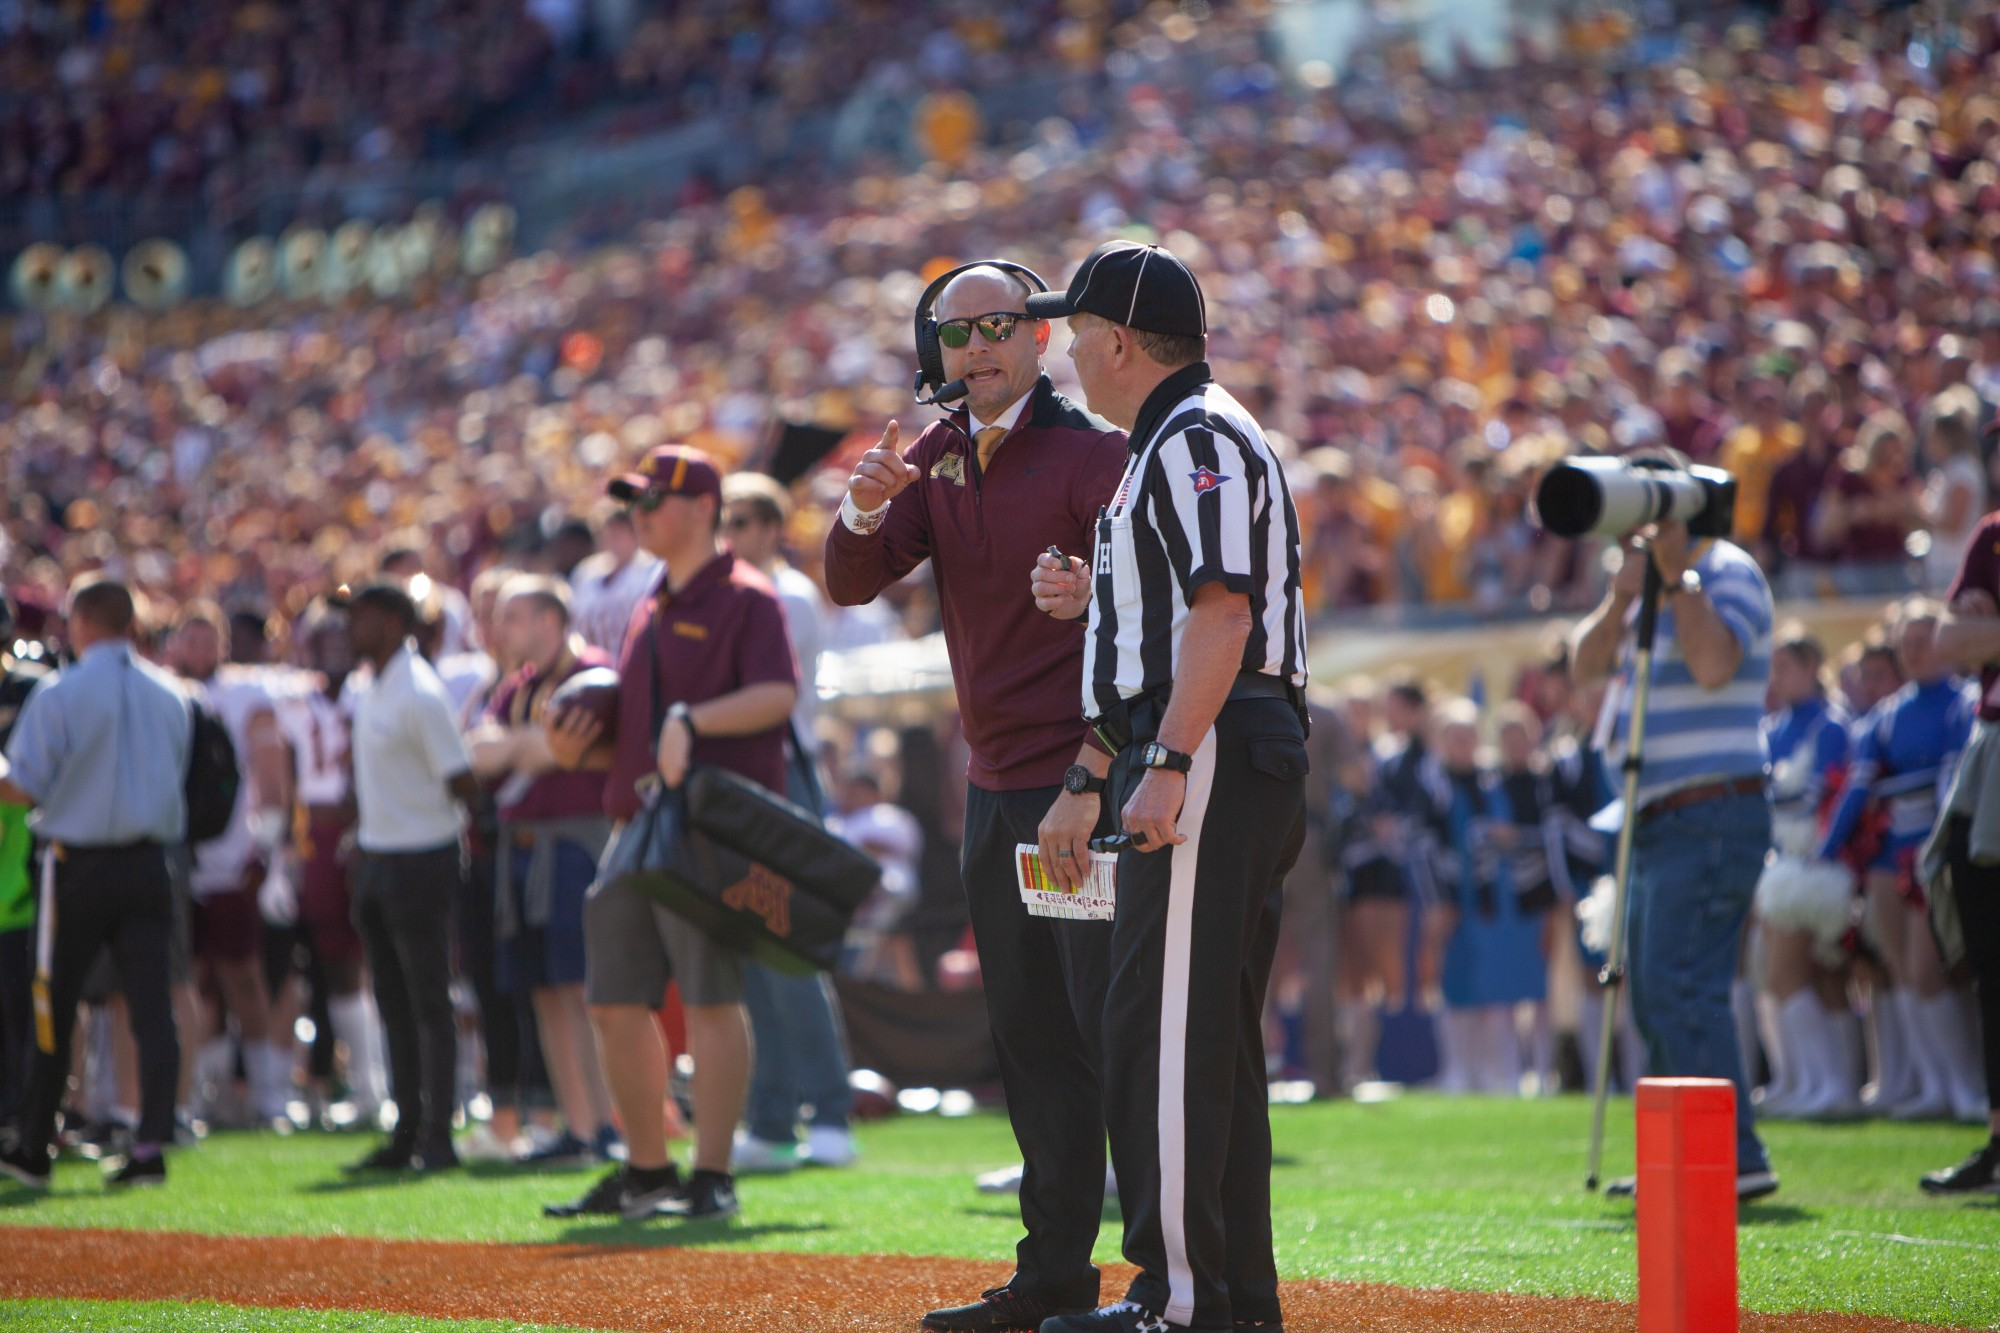 Gophers Head Coach P.J. Fleck converses with a referee at Raymond James Stadium in Tampa, Florida on Wednesday, Jan. 1. Minnesota holds a 24-17 lead over Auburn heading into the third quarter of the Outback Bowl. (Kamaan Richards / Minnesota Daily)